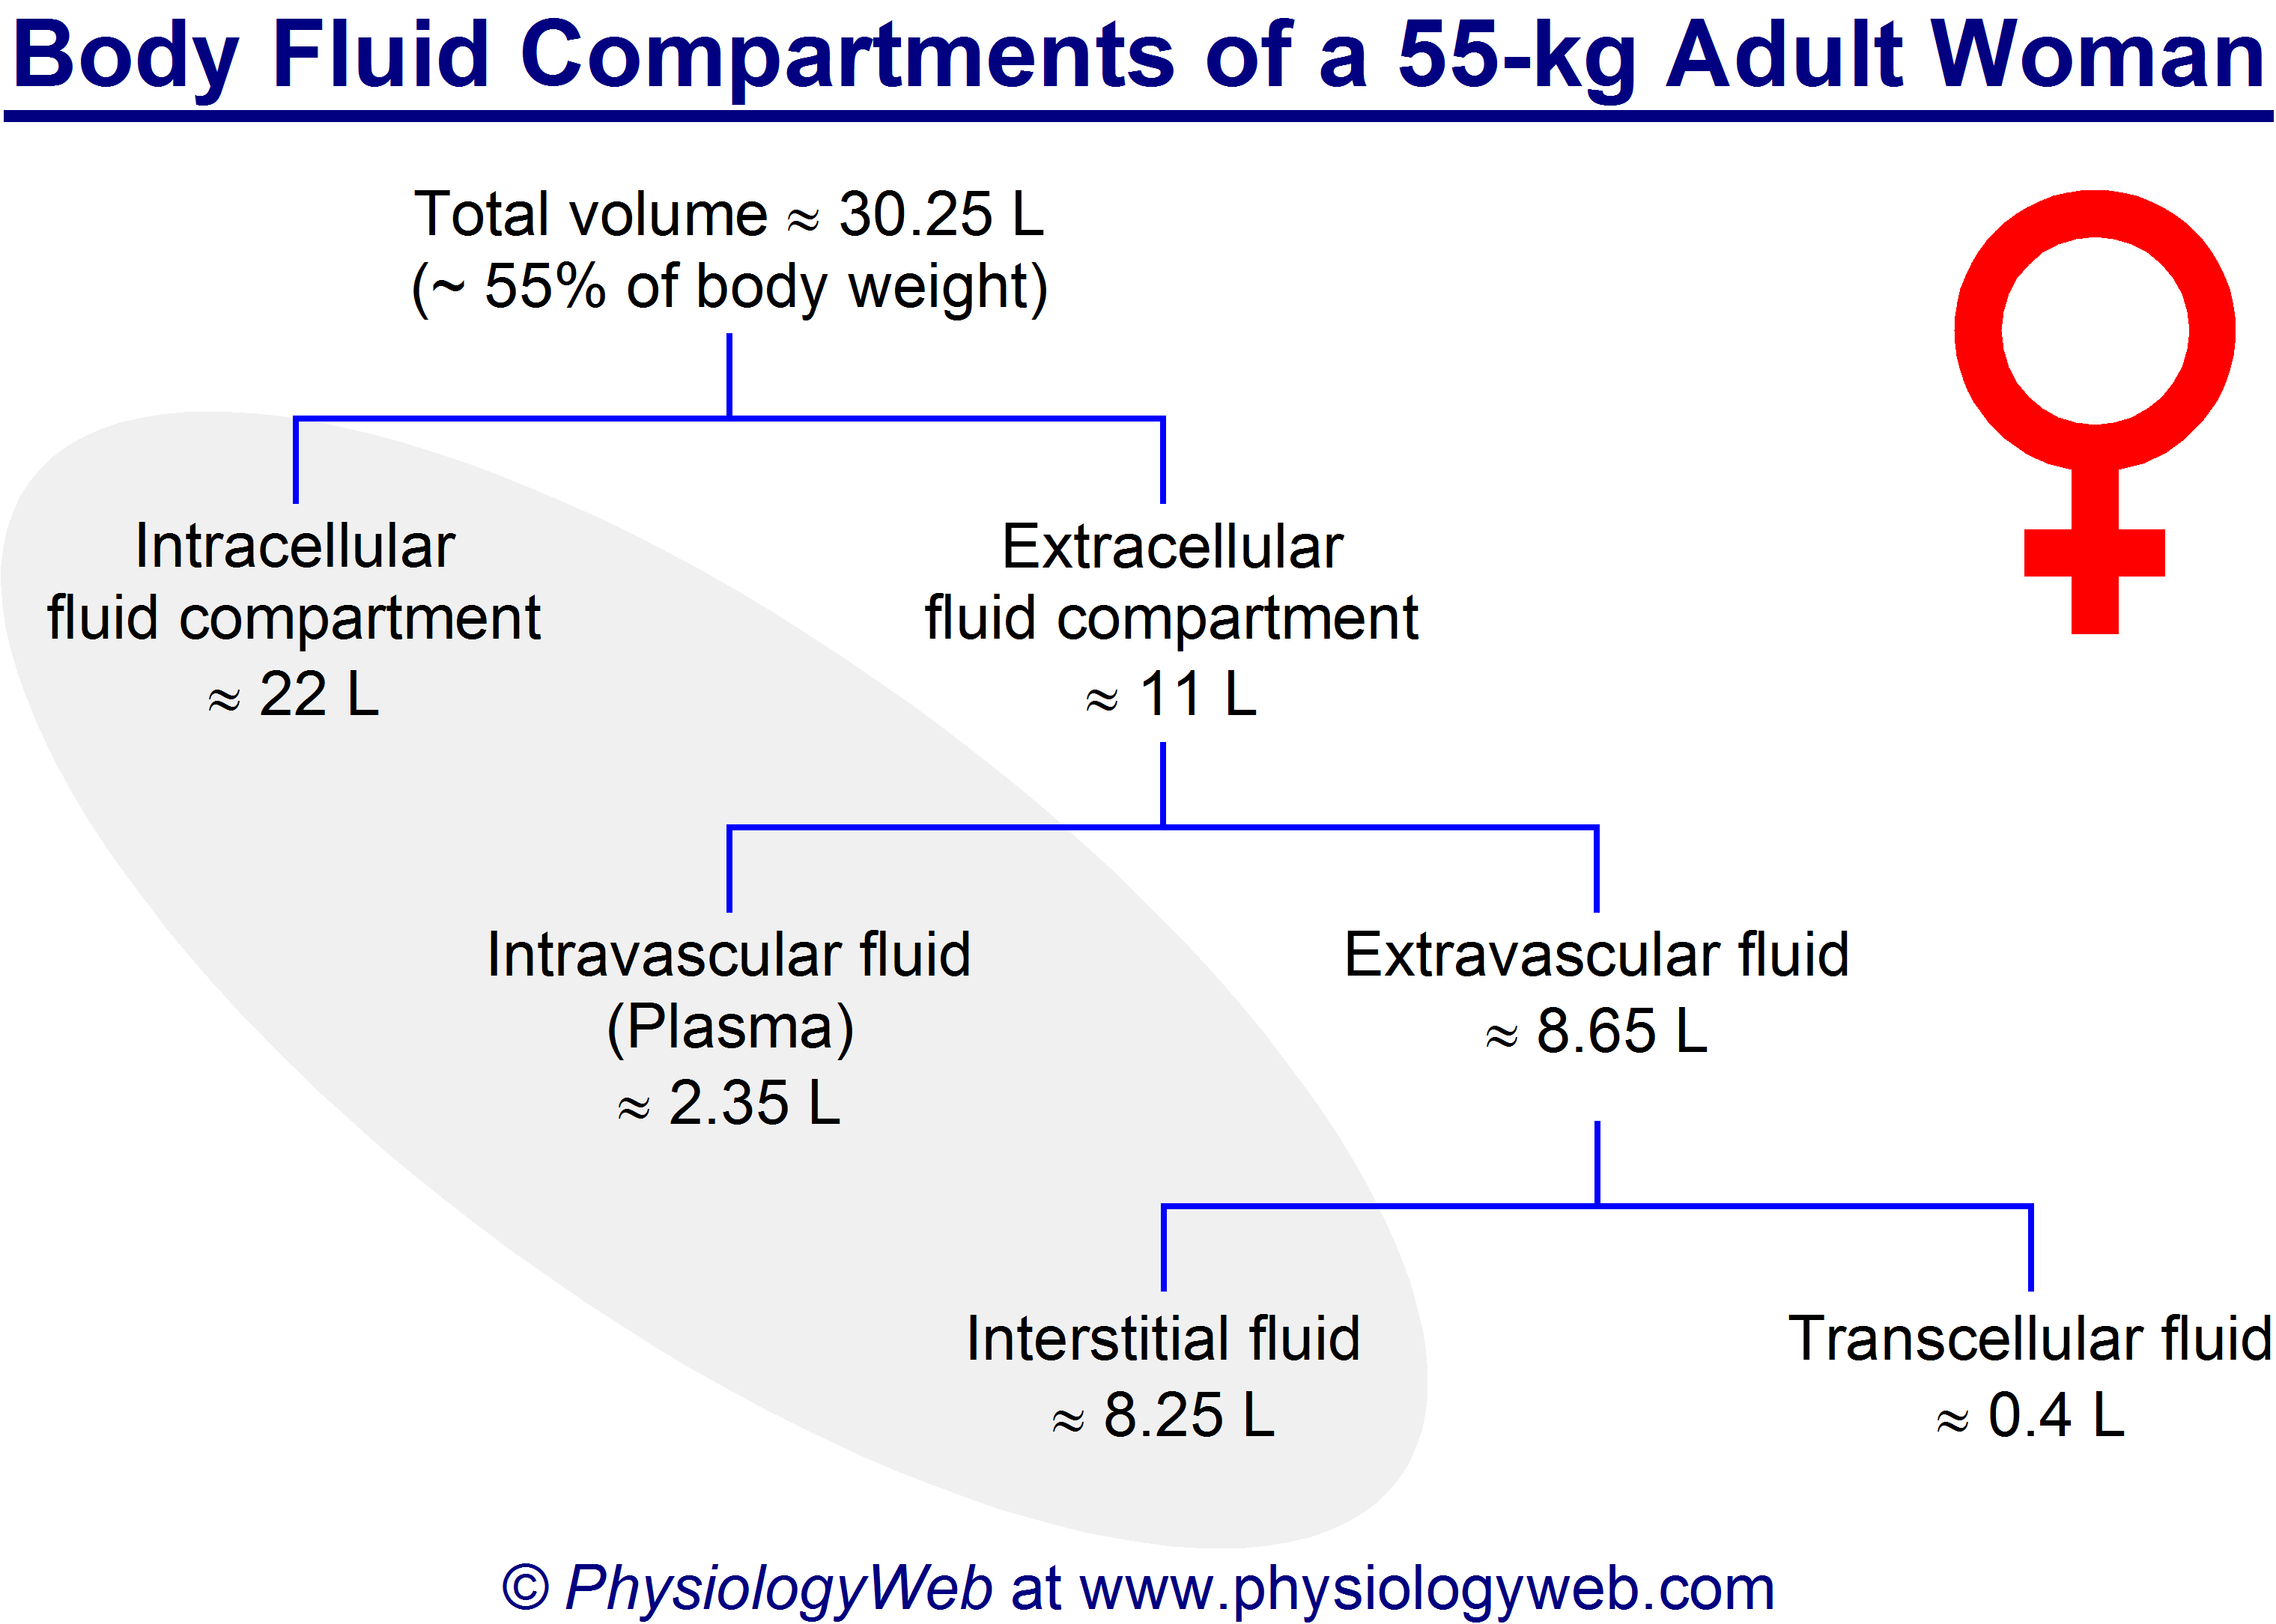 Body fluid compartments of a 55-kg adult woman.